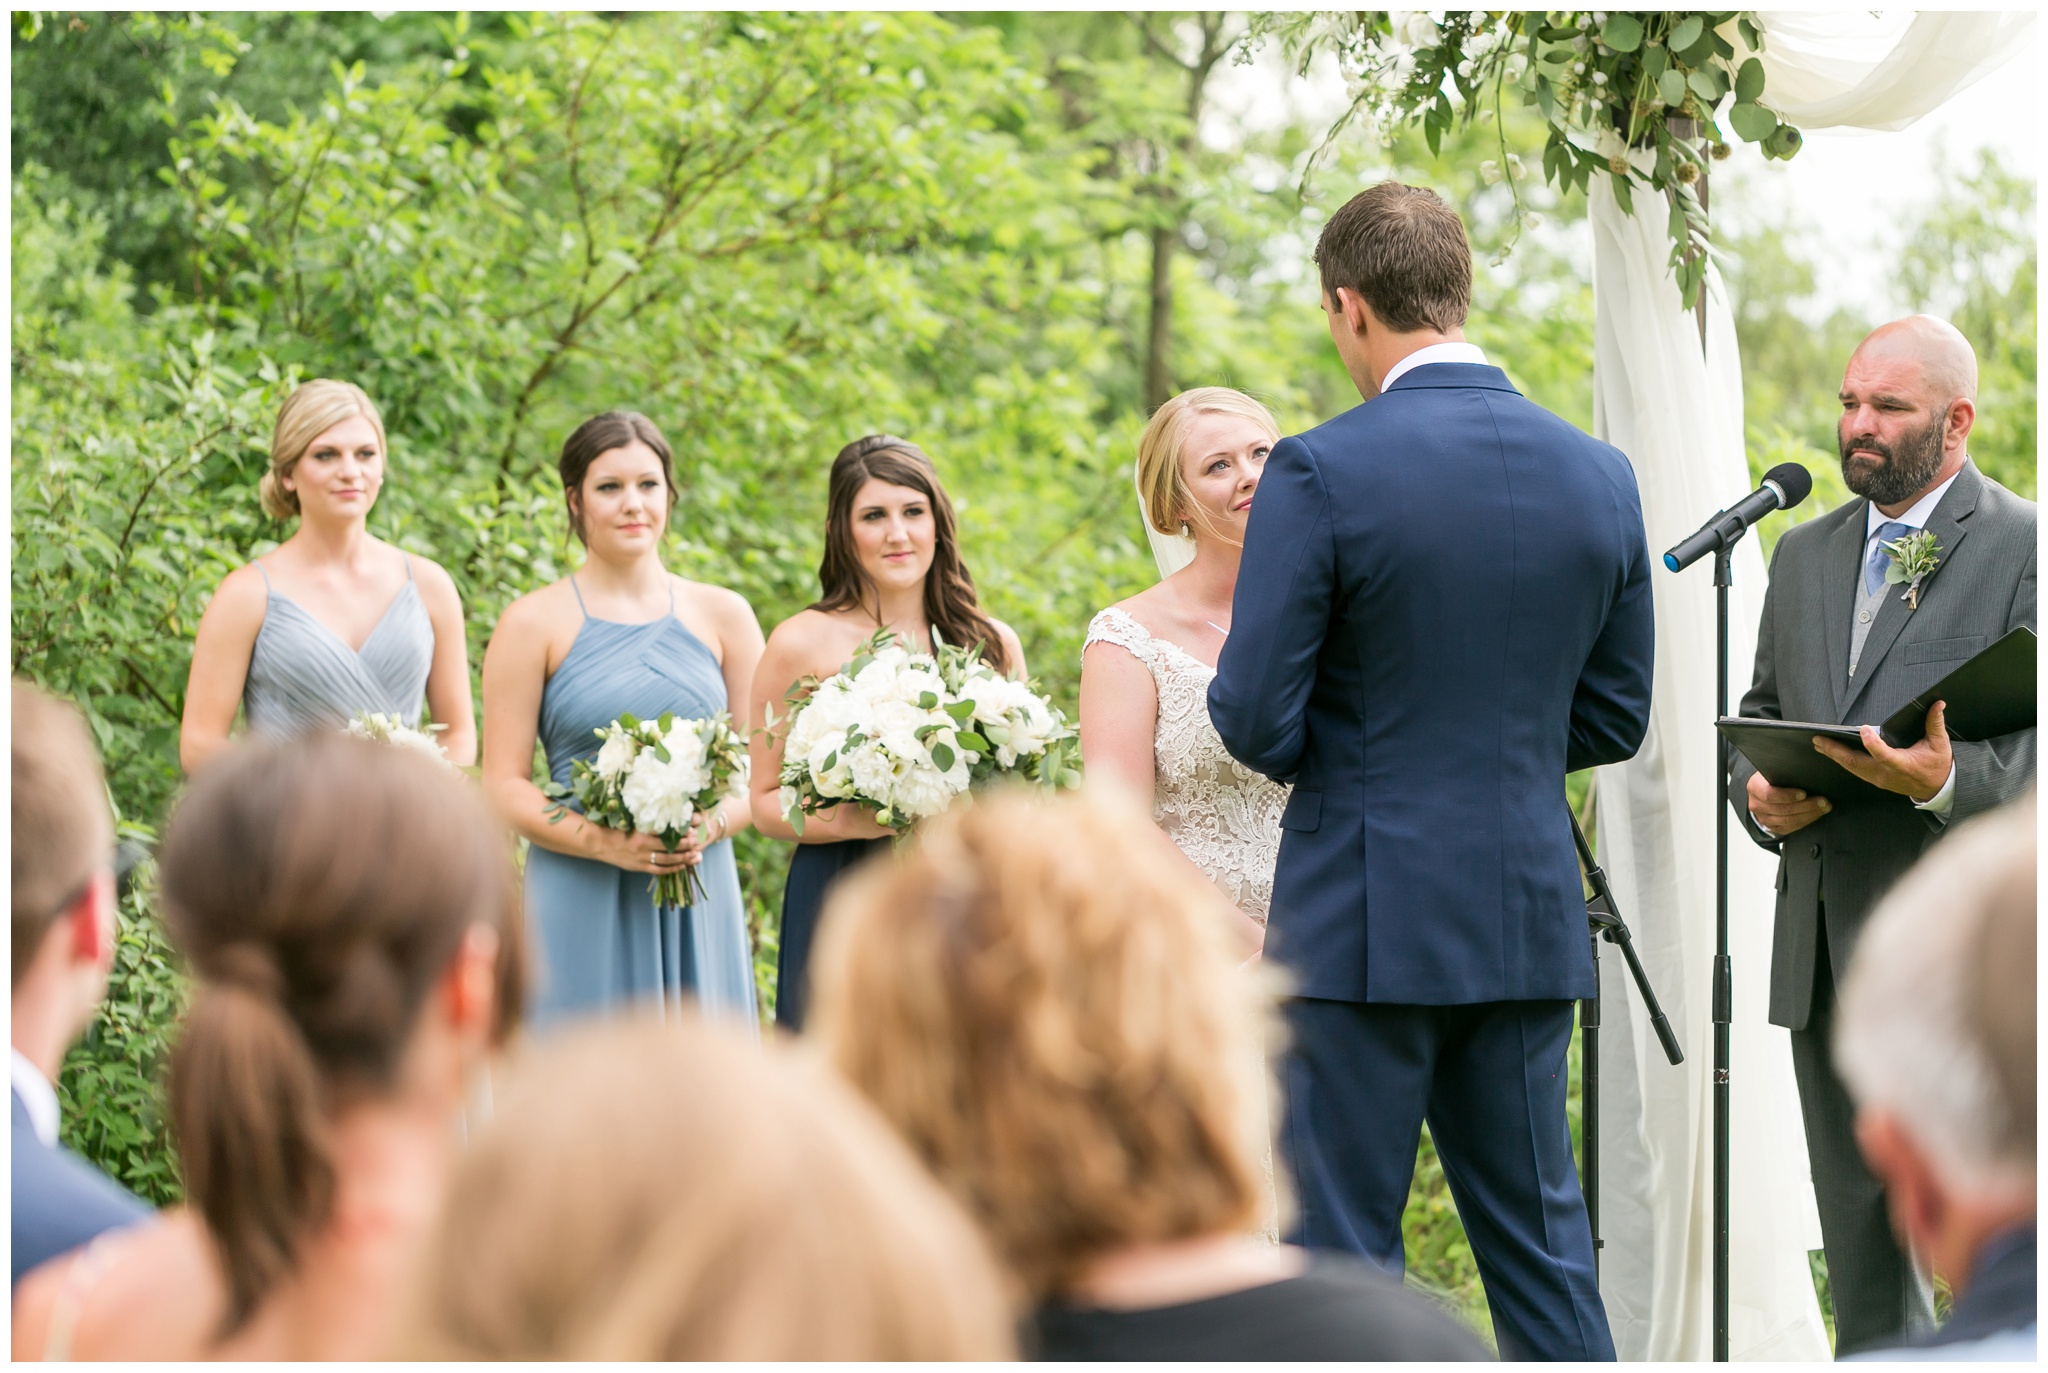 private_estate_wedding_stoughton_wisconsin_wedding_caynay_photo_3866.jpg